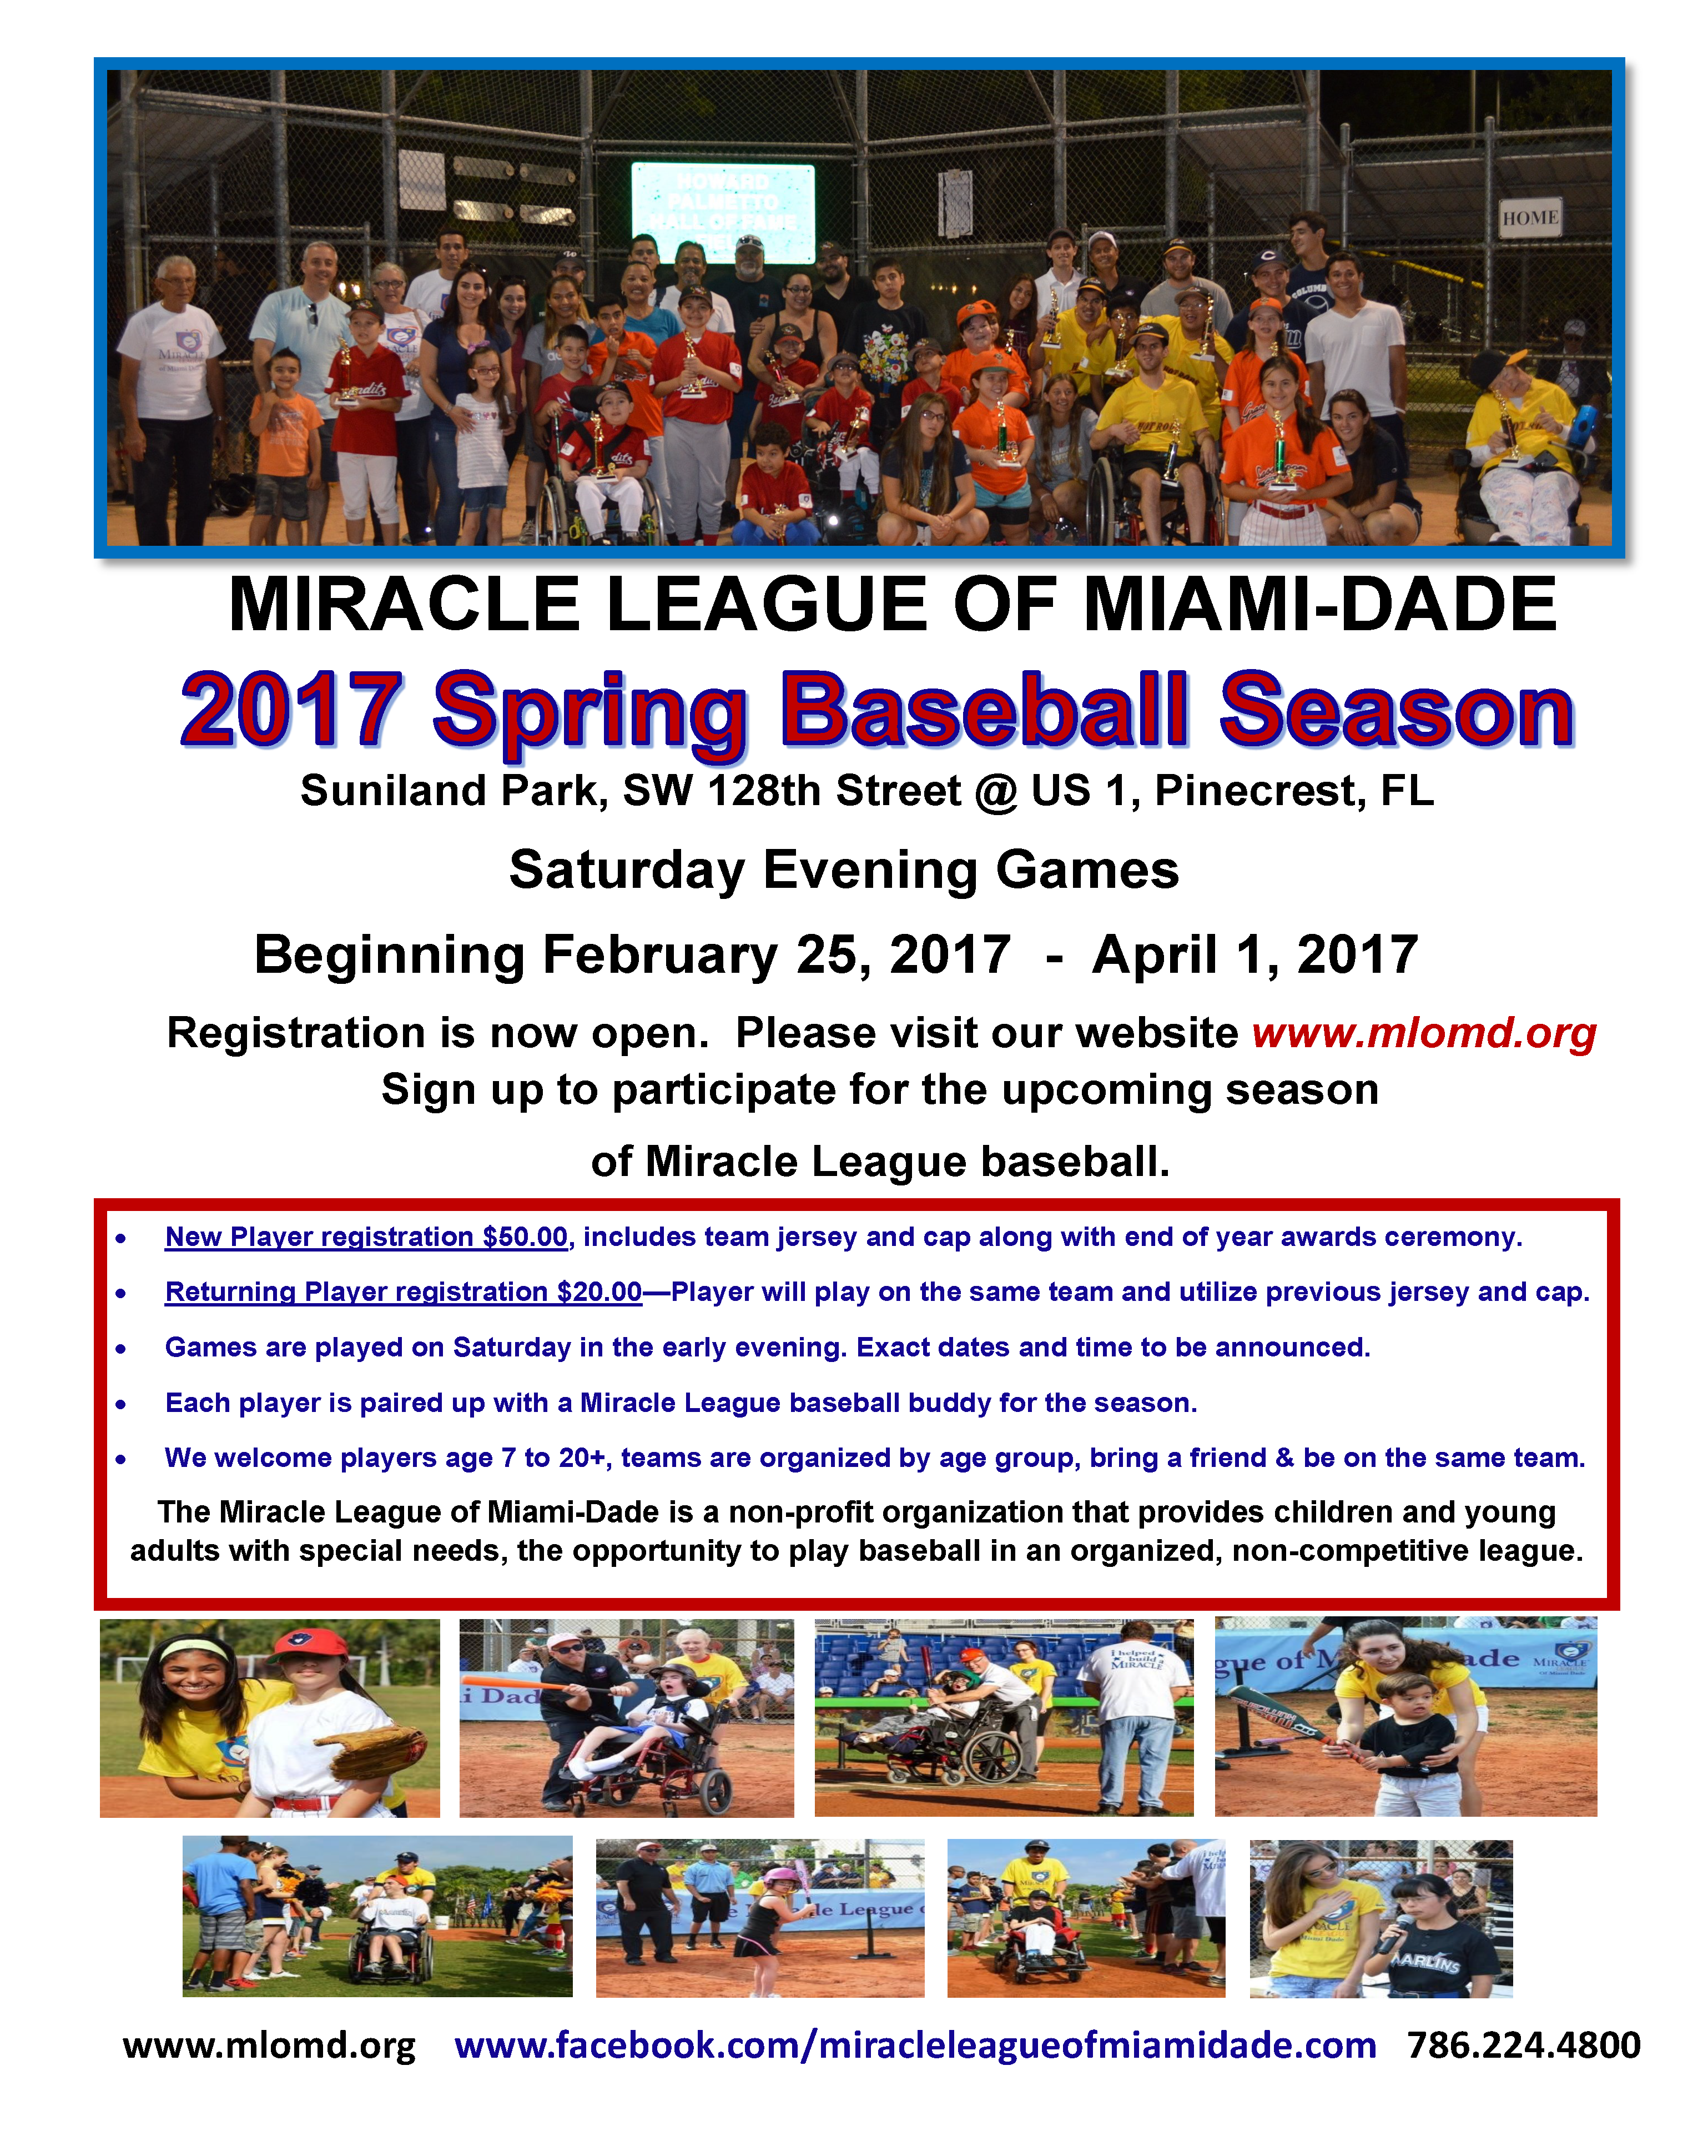 102054_Miracle_League_Game_Flyer_Spring__Baseball_2017_Rev._ML_(002)